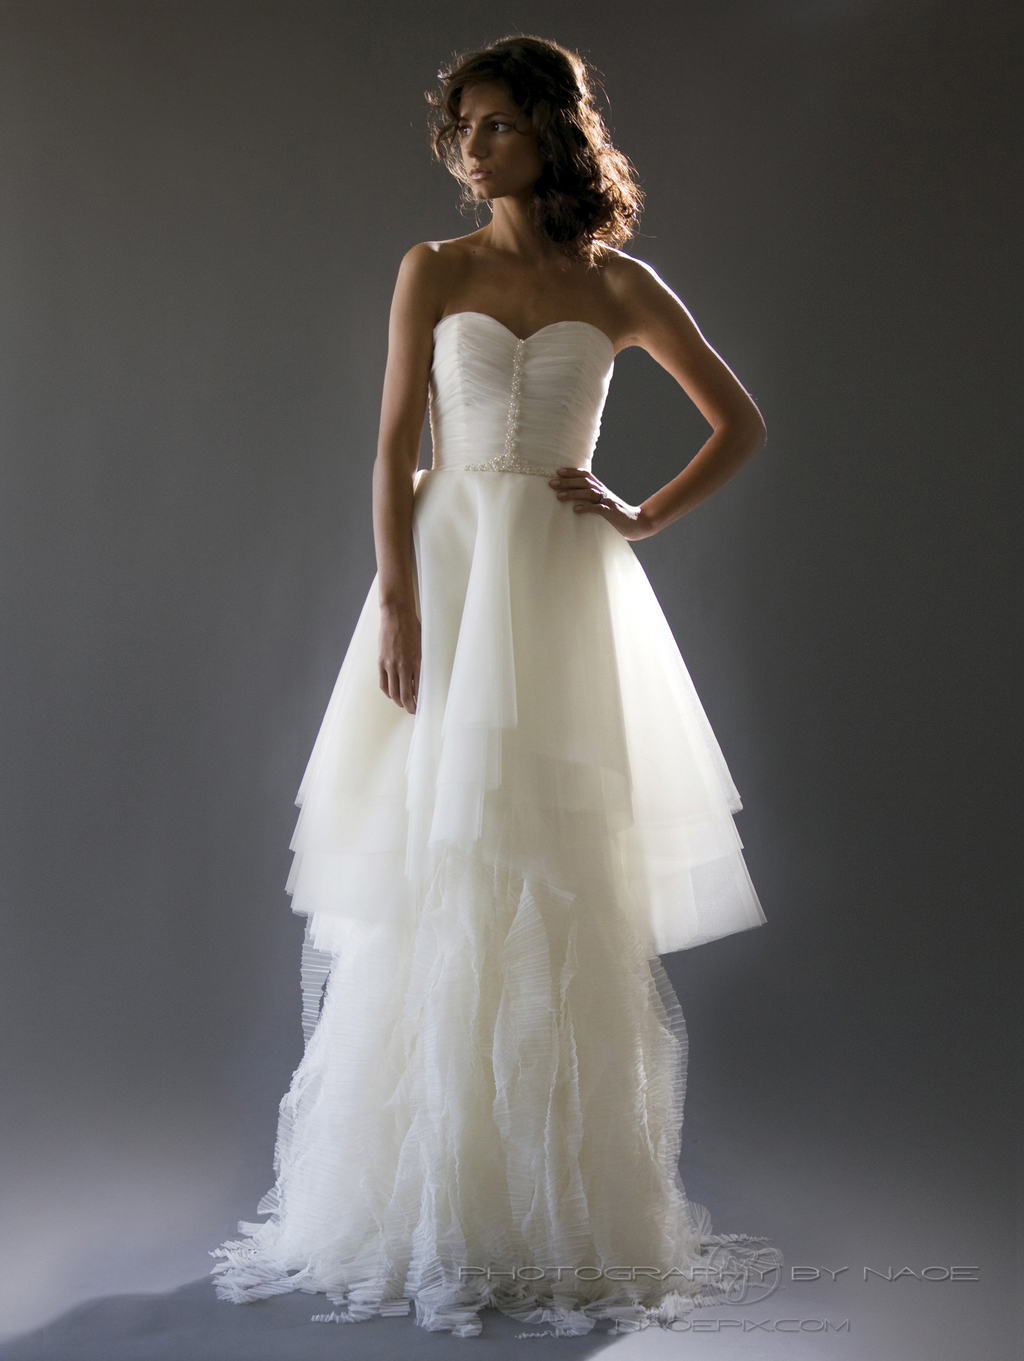 Wedding-dress-spring-2013-bridal_gown-cocoe-voci-1.full